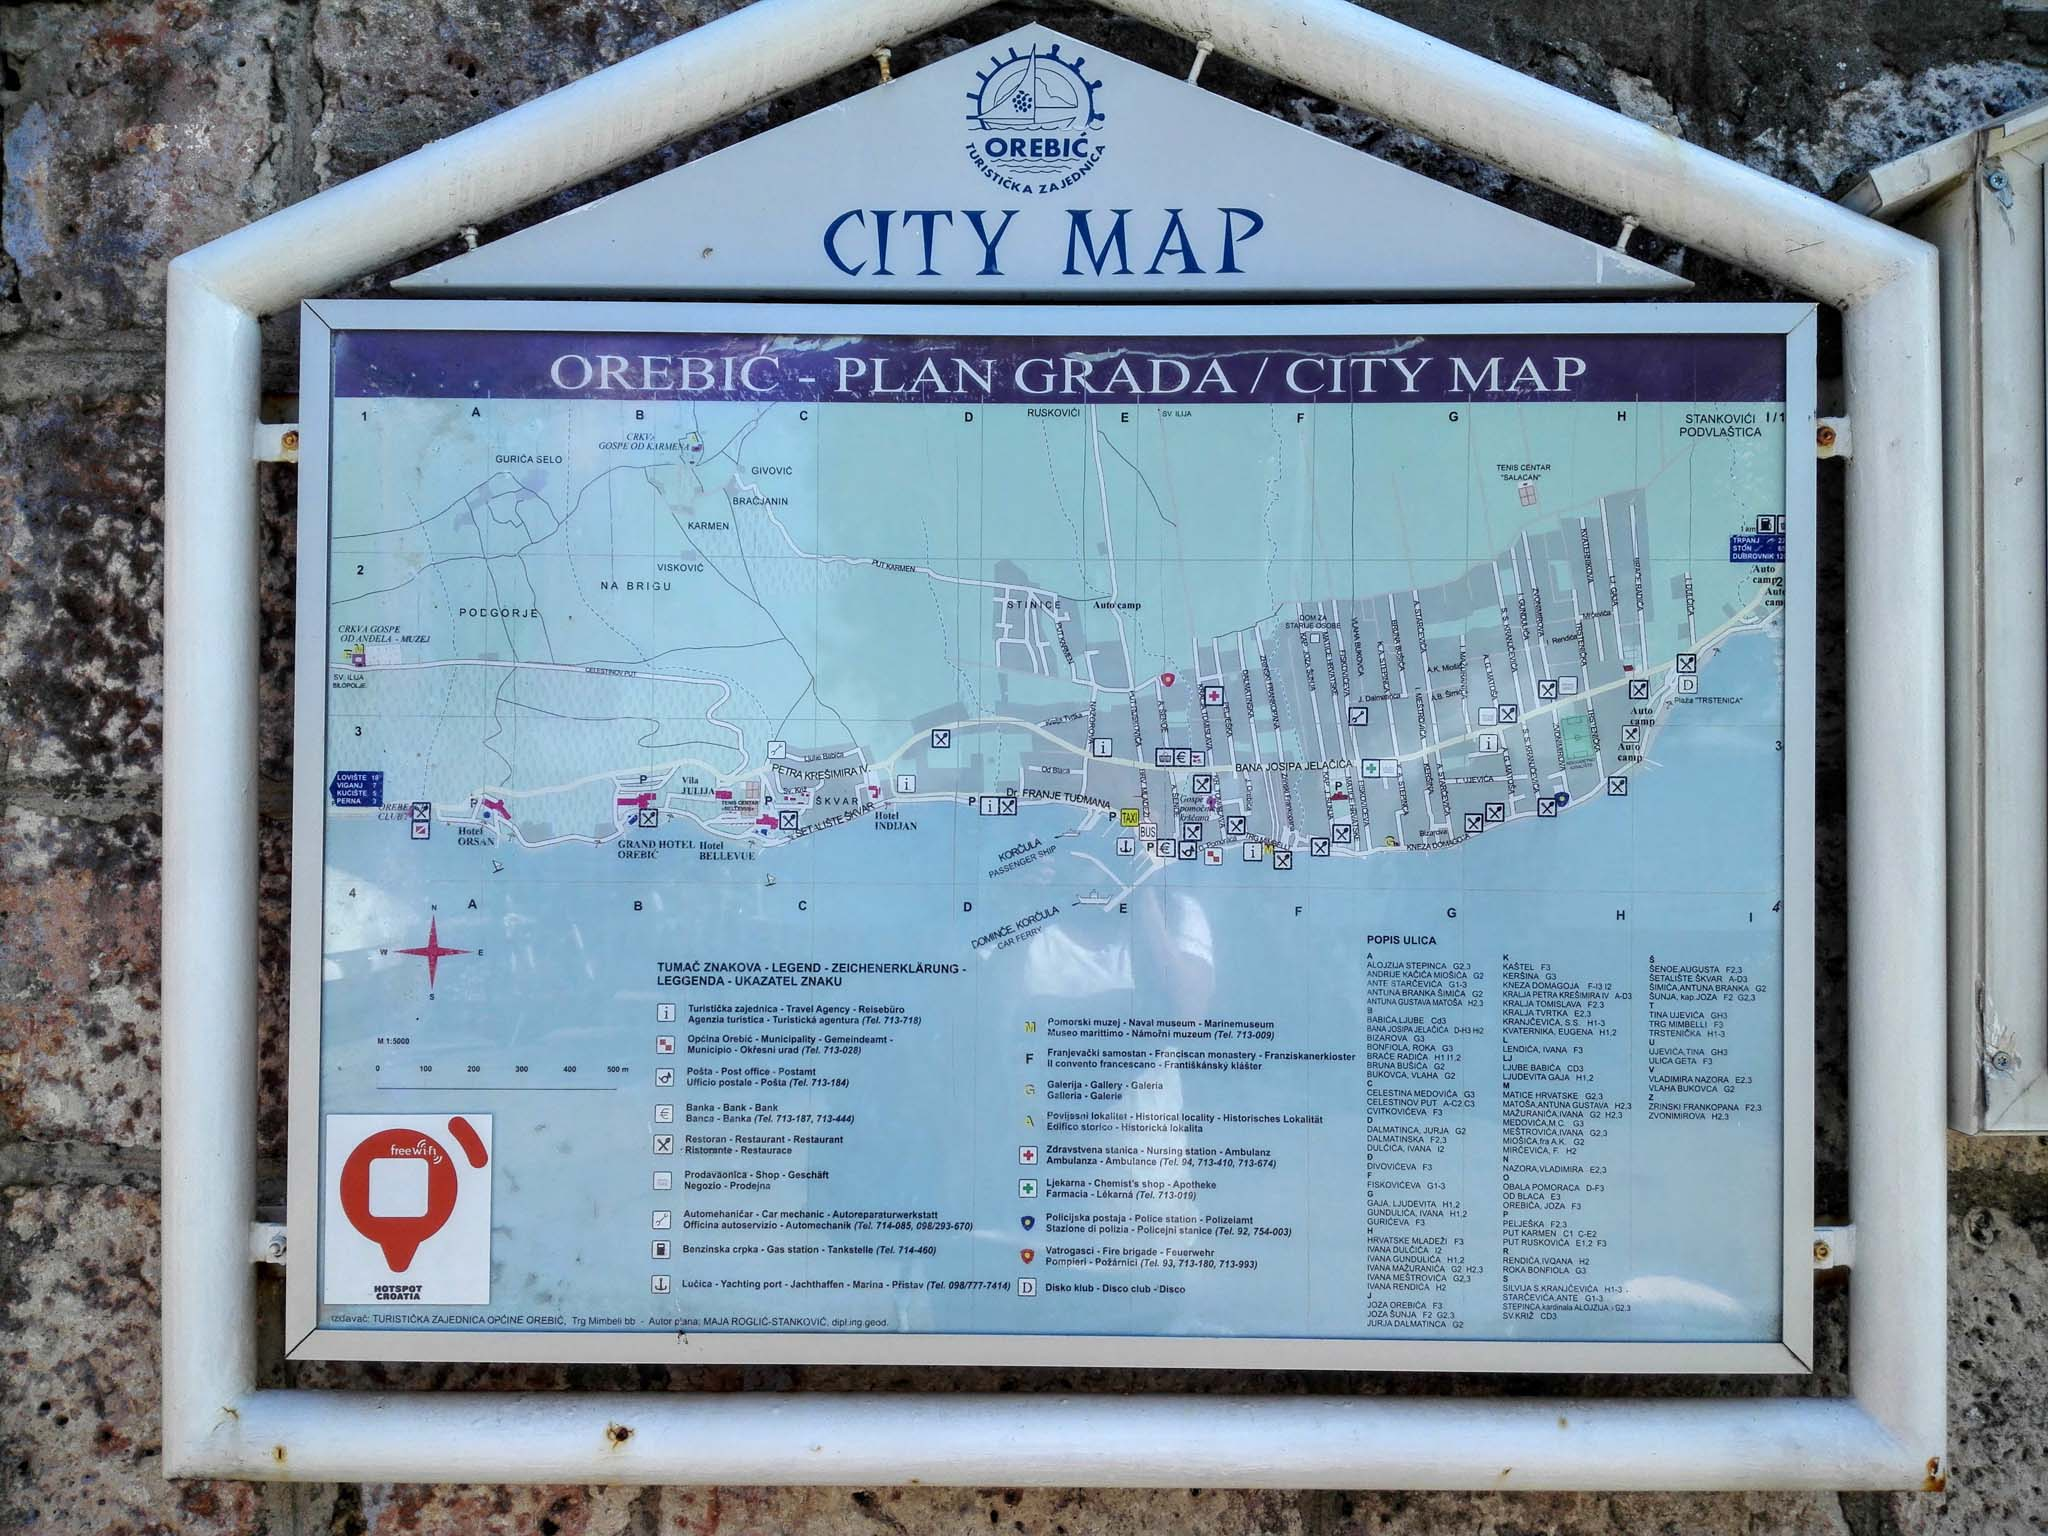 City Map of Orebic Waiting to board the Ferry to Korkula